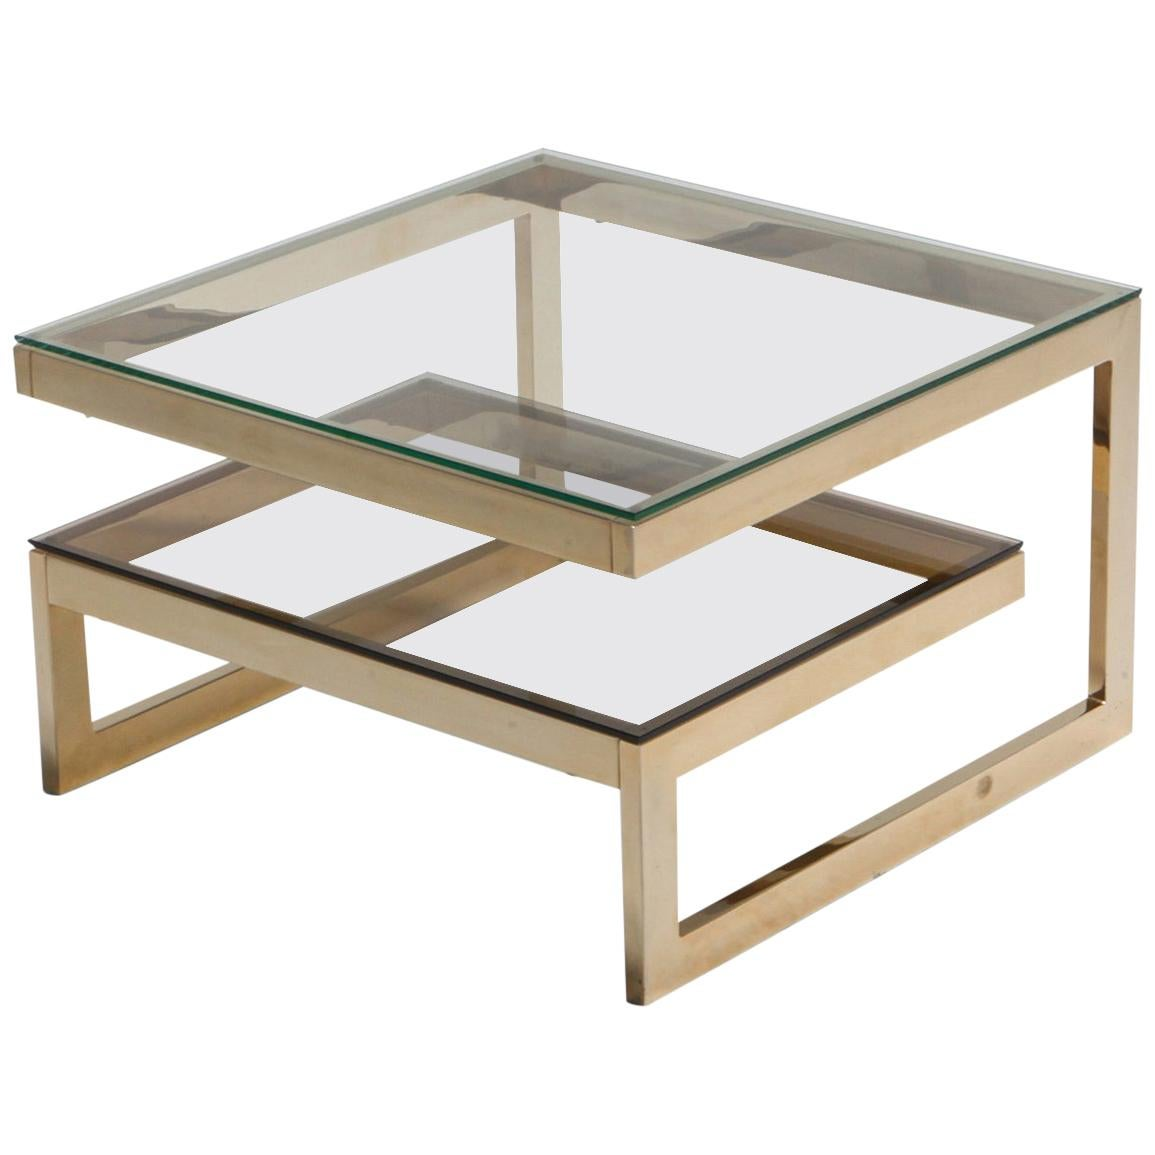 Gold-Plated 'G' Shaped Occasional Table